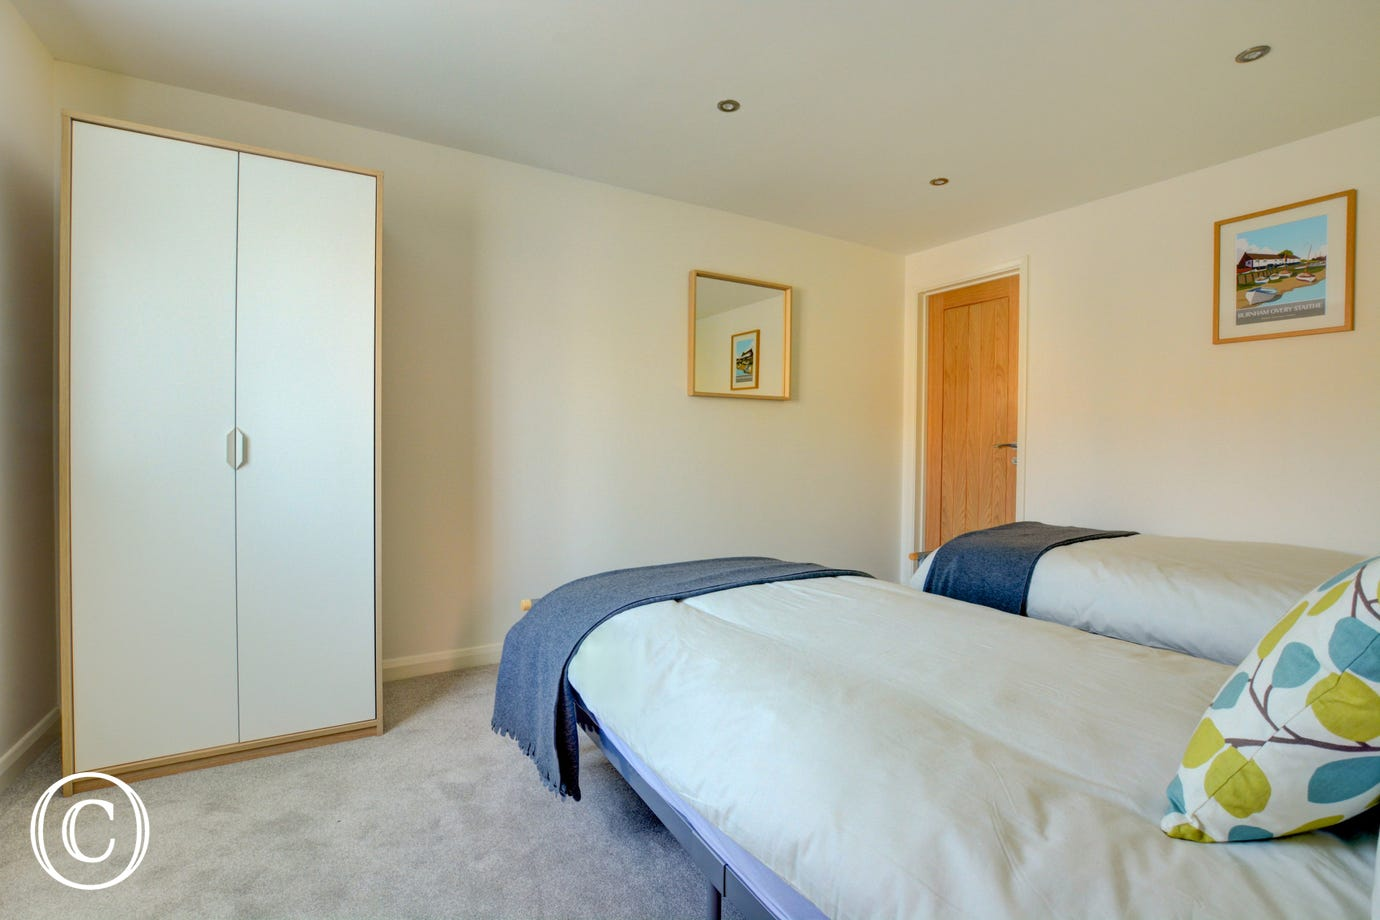 Bedroom 3 showing twin beds and wardrobe